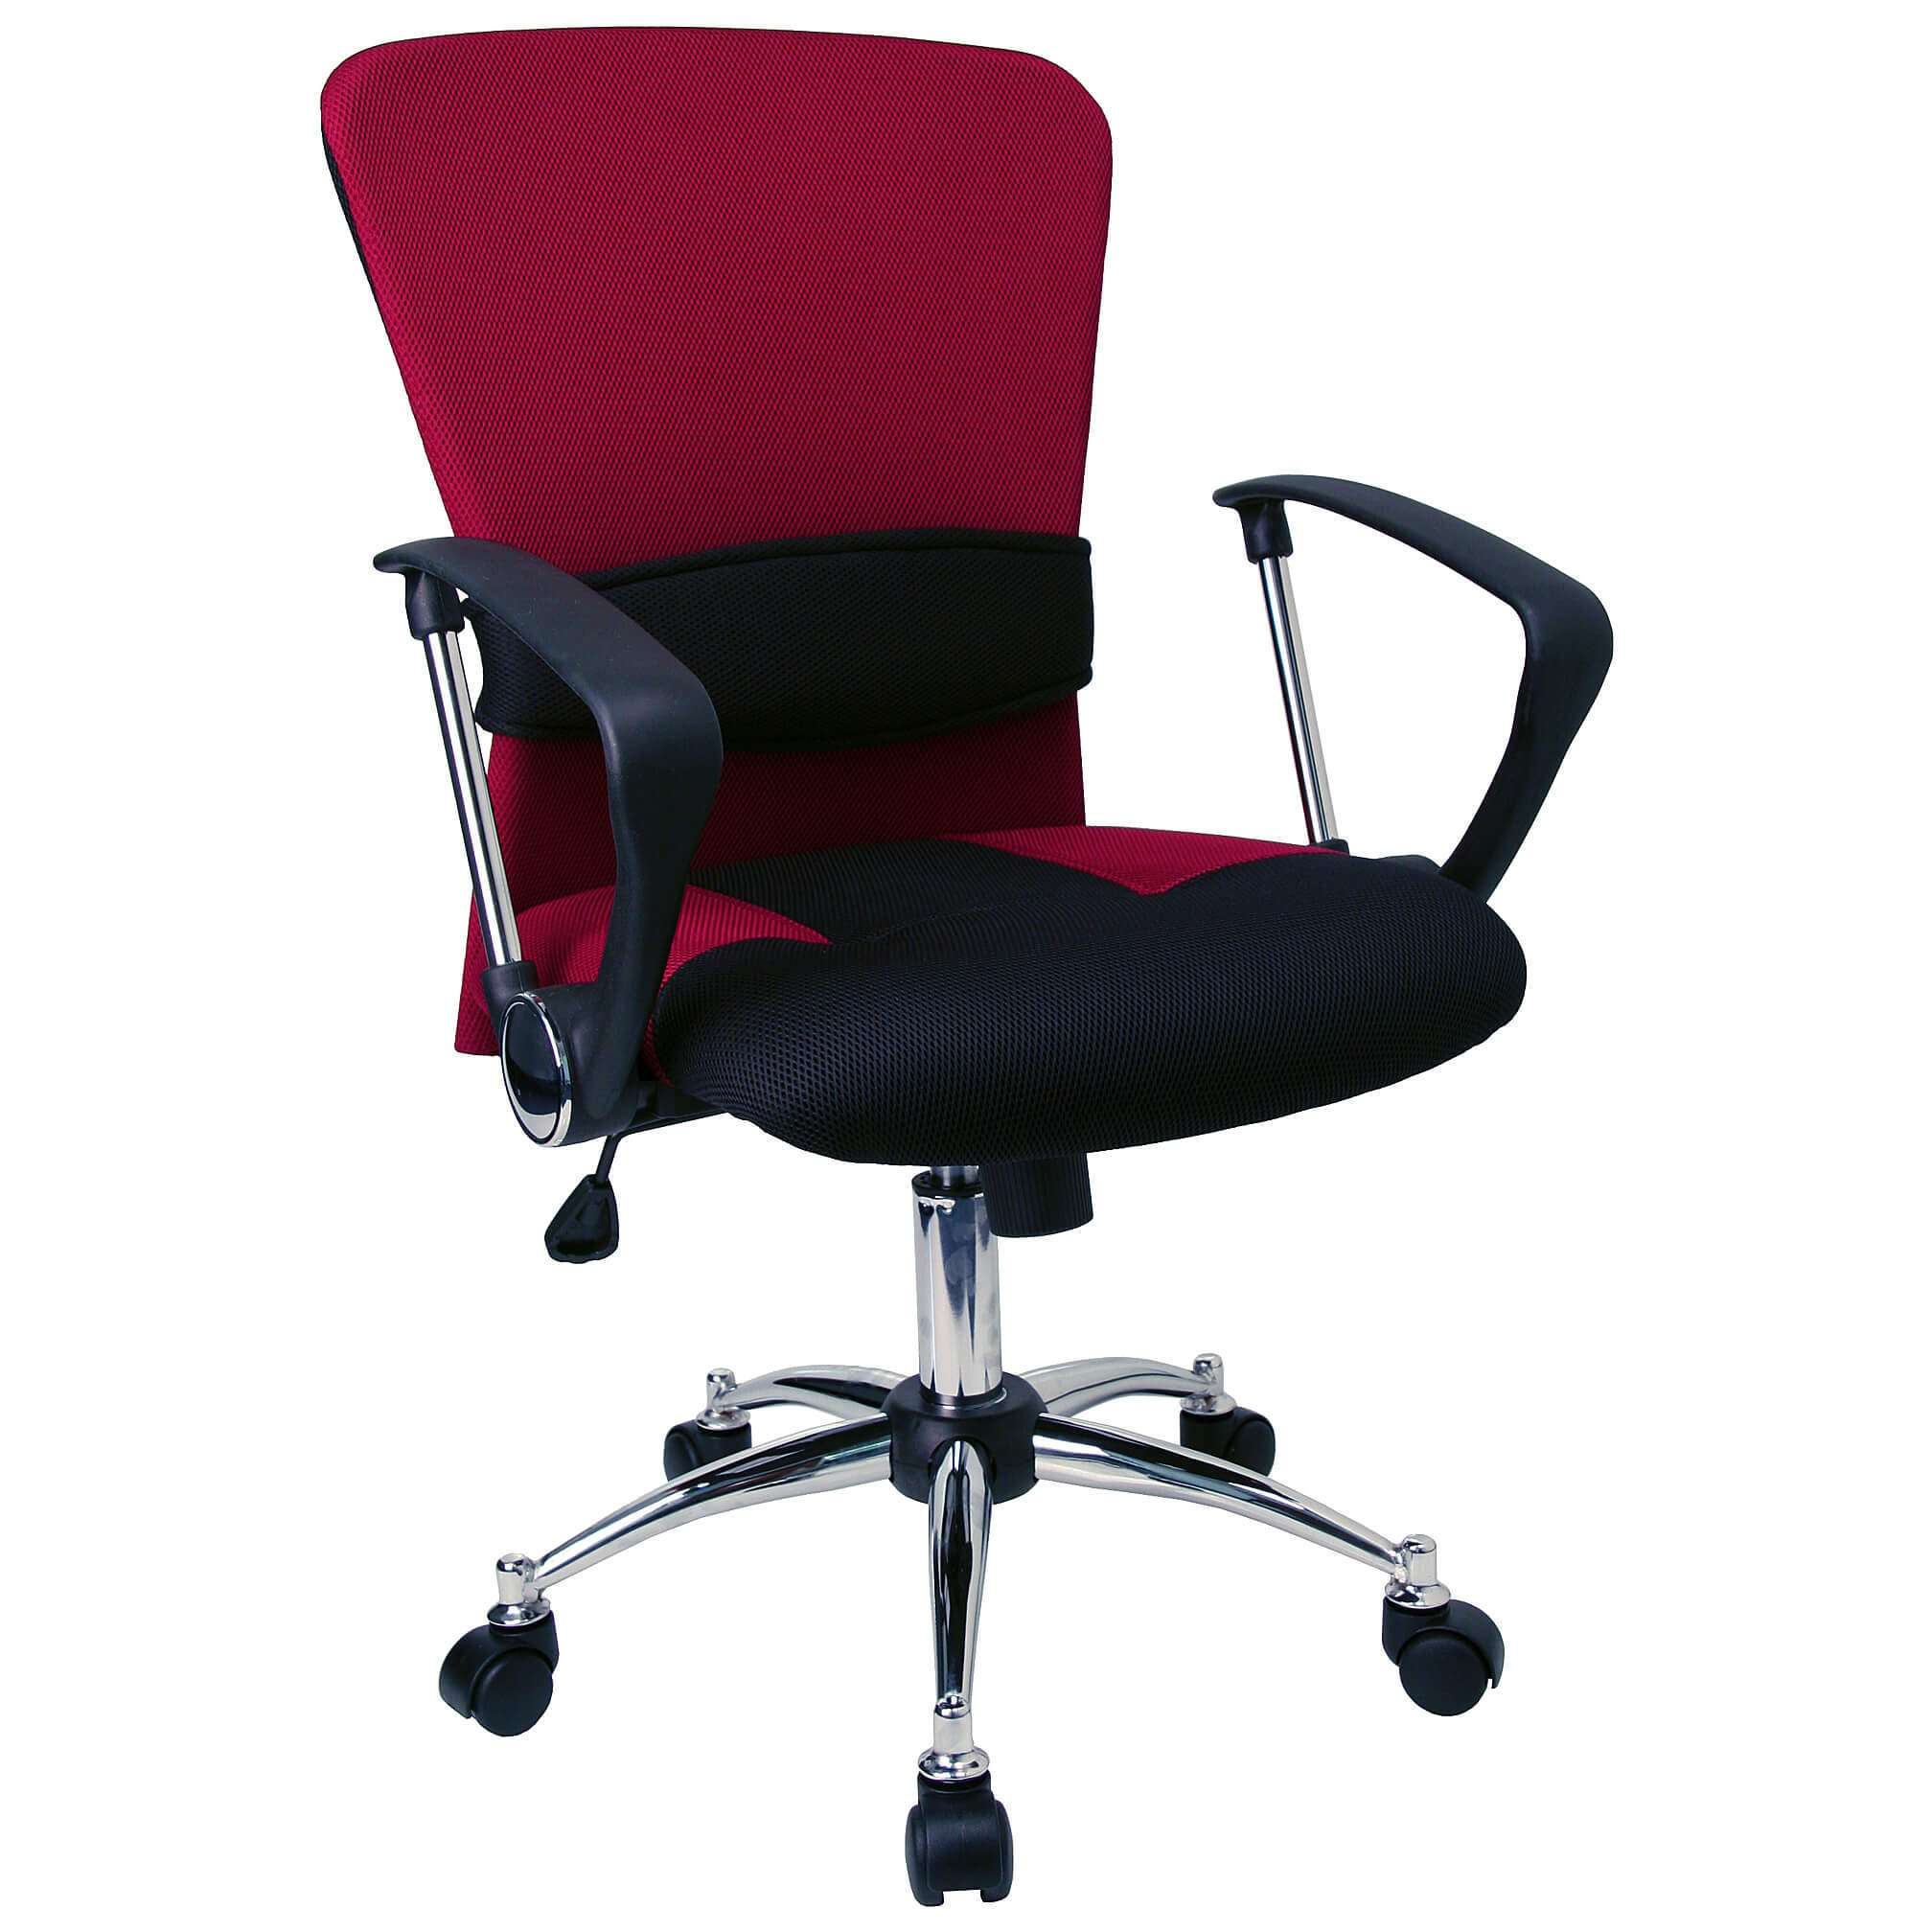 Cool Office Chair Night Star Lumbar Support Office Chair